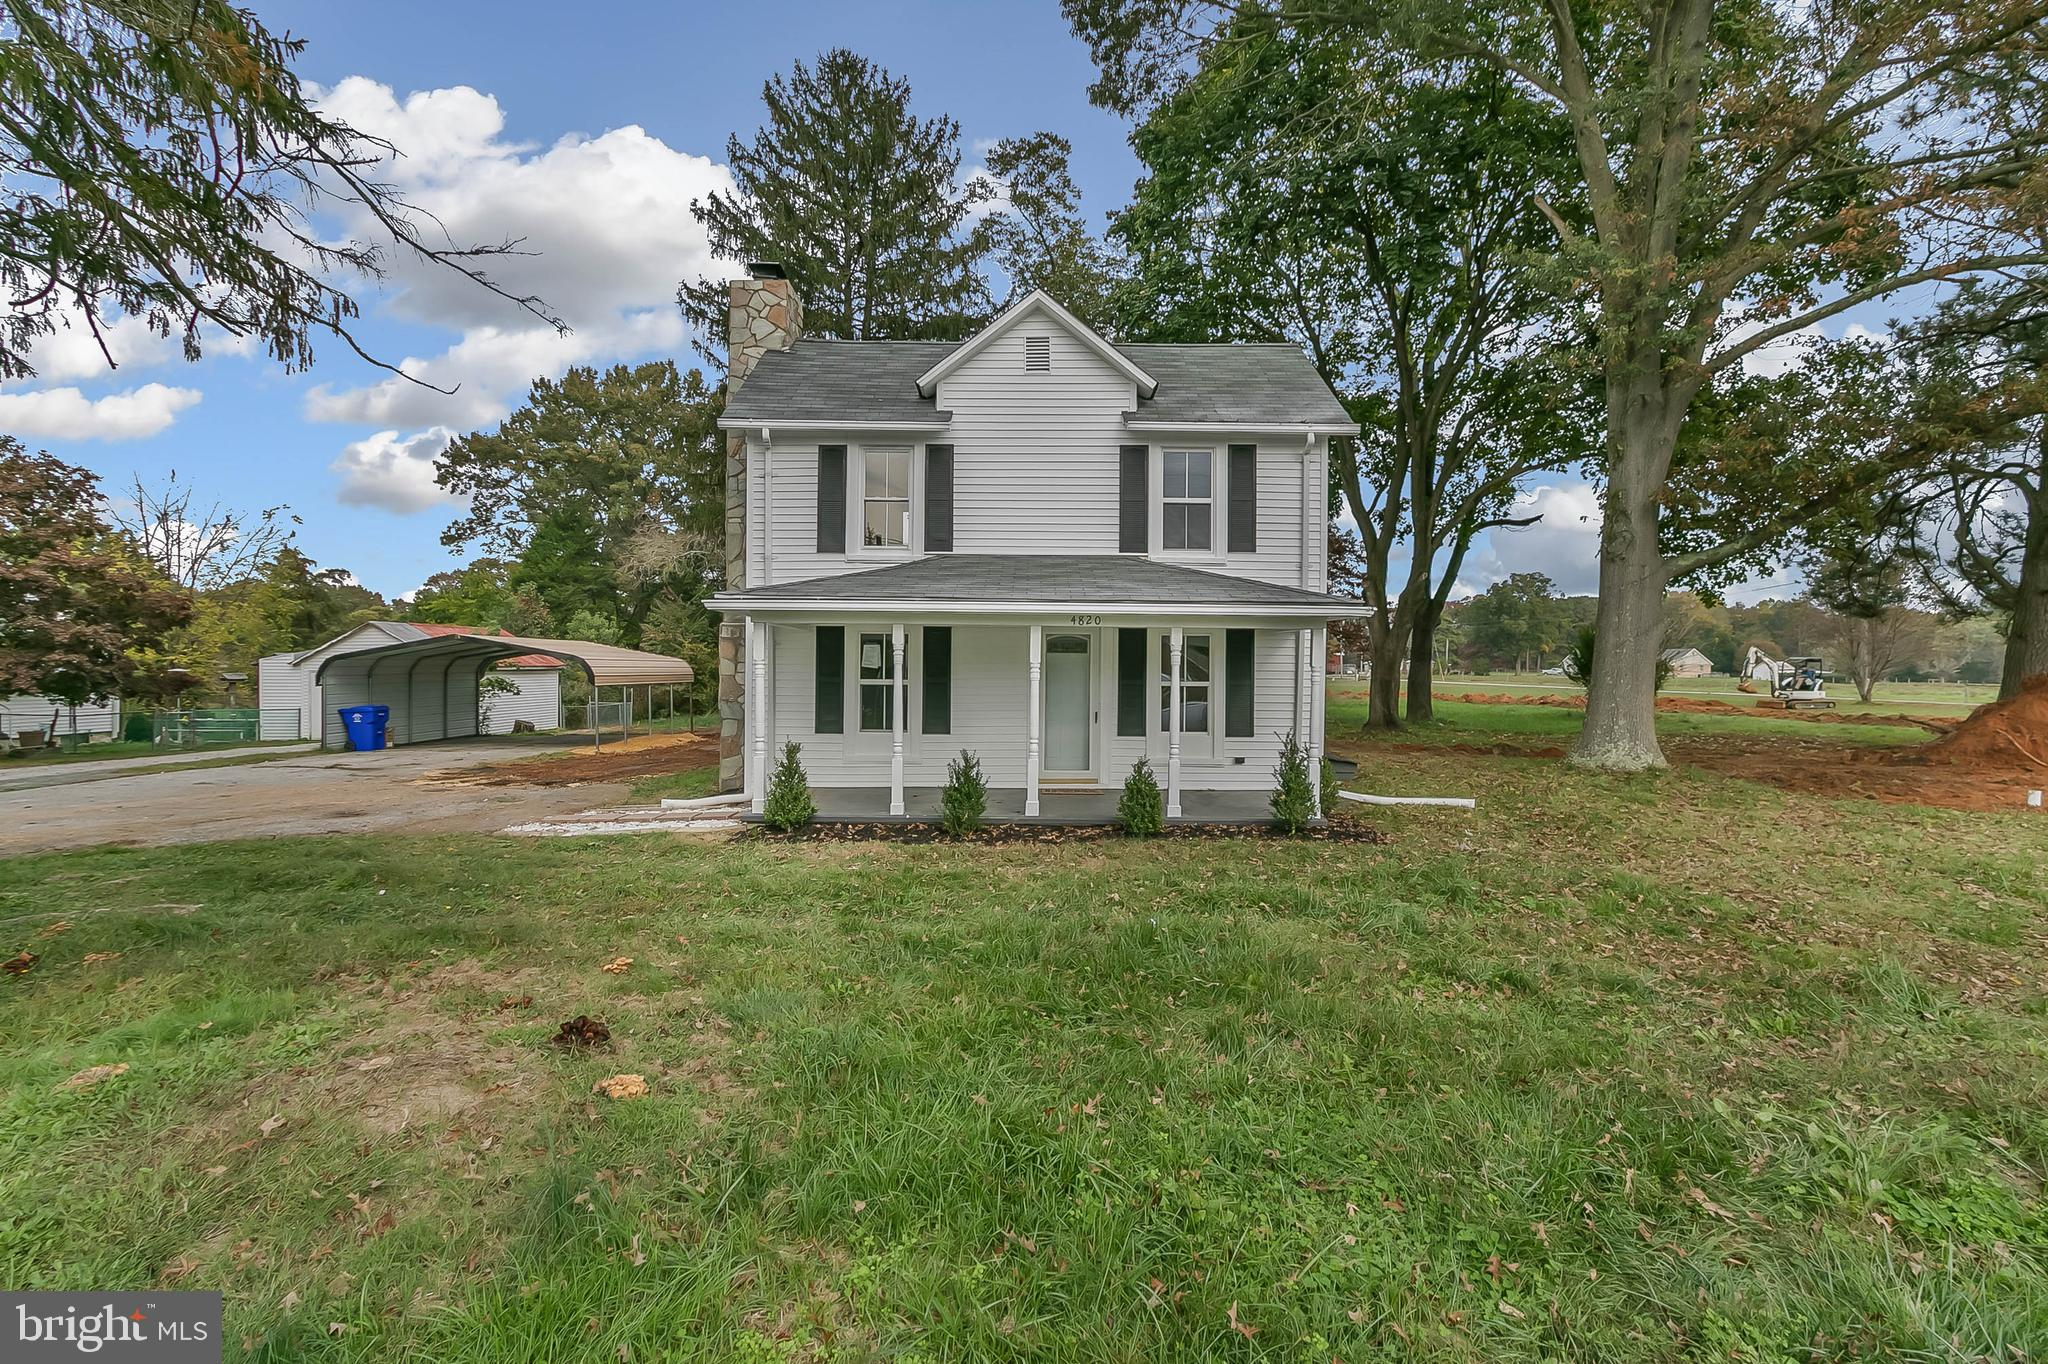 BEAUTIFUL TWO STORY FARM HOUSE ON LARGE 2 ACRE LOT... Main level features custom kitchen, granite co